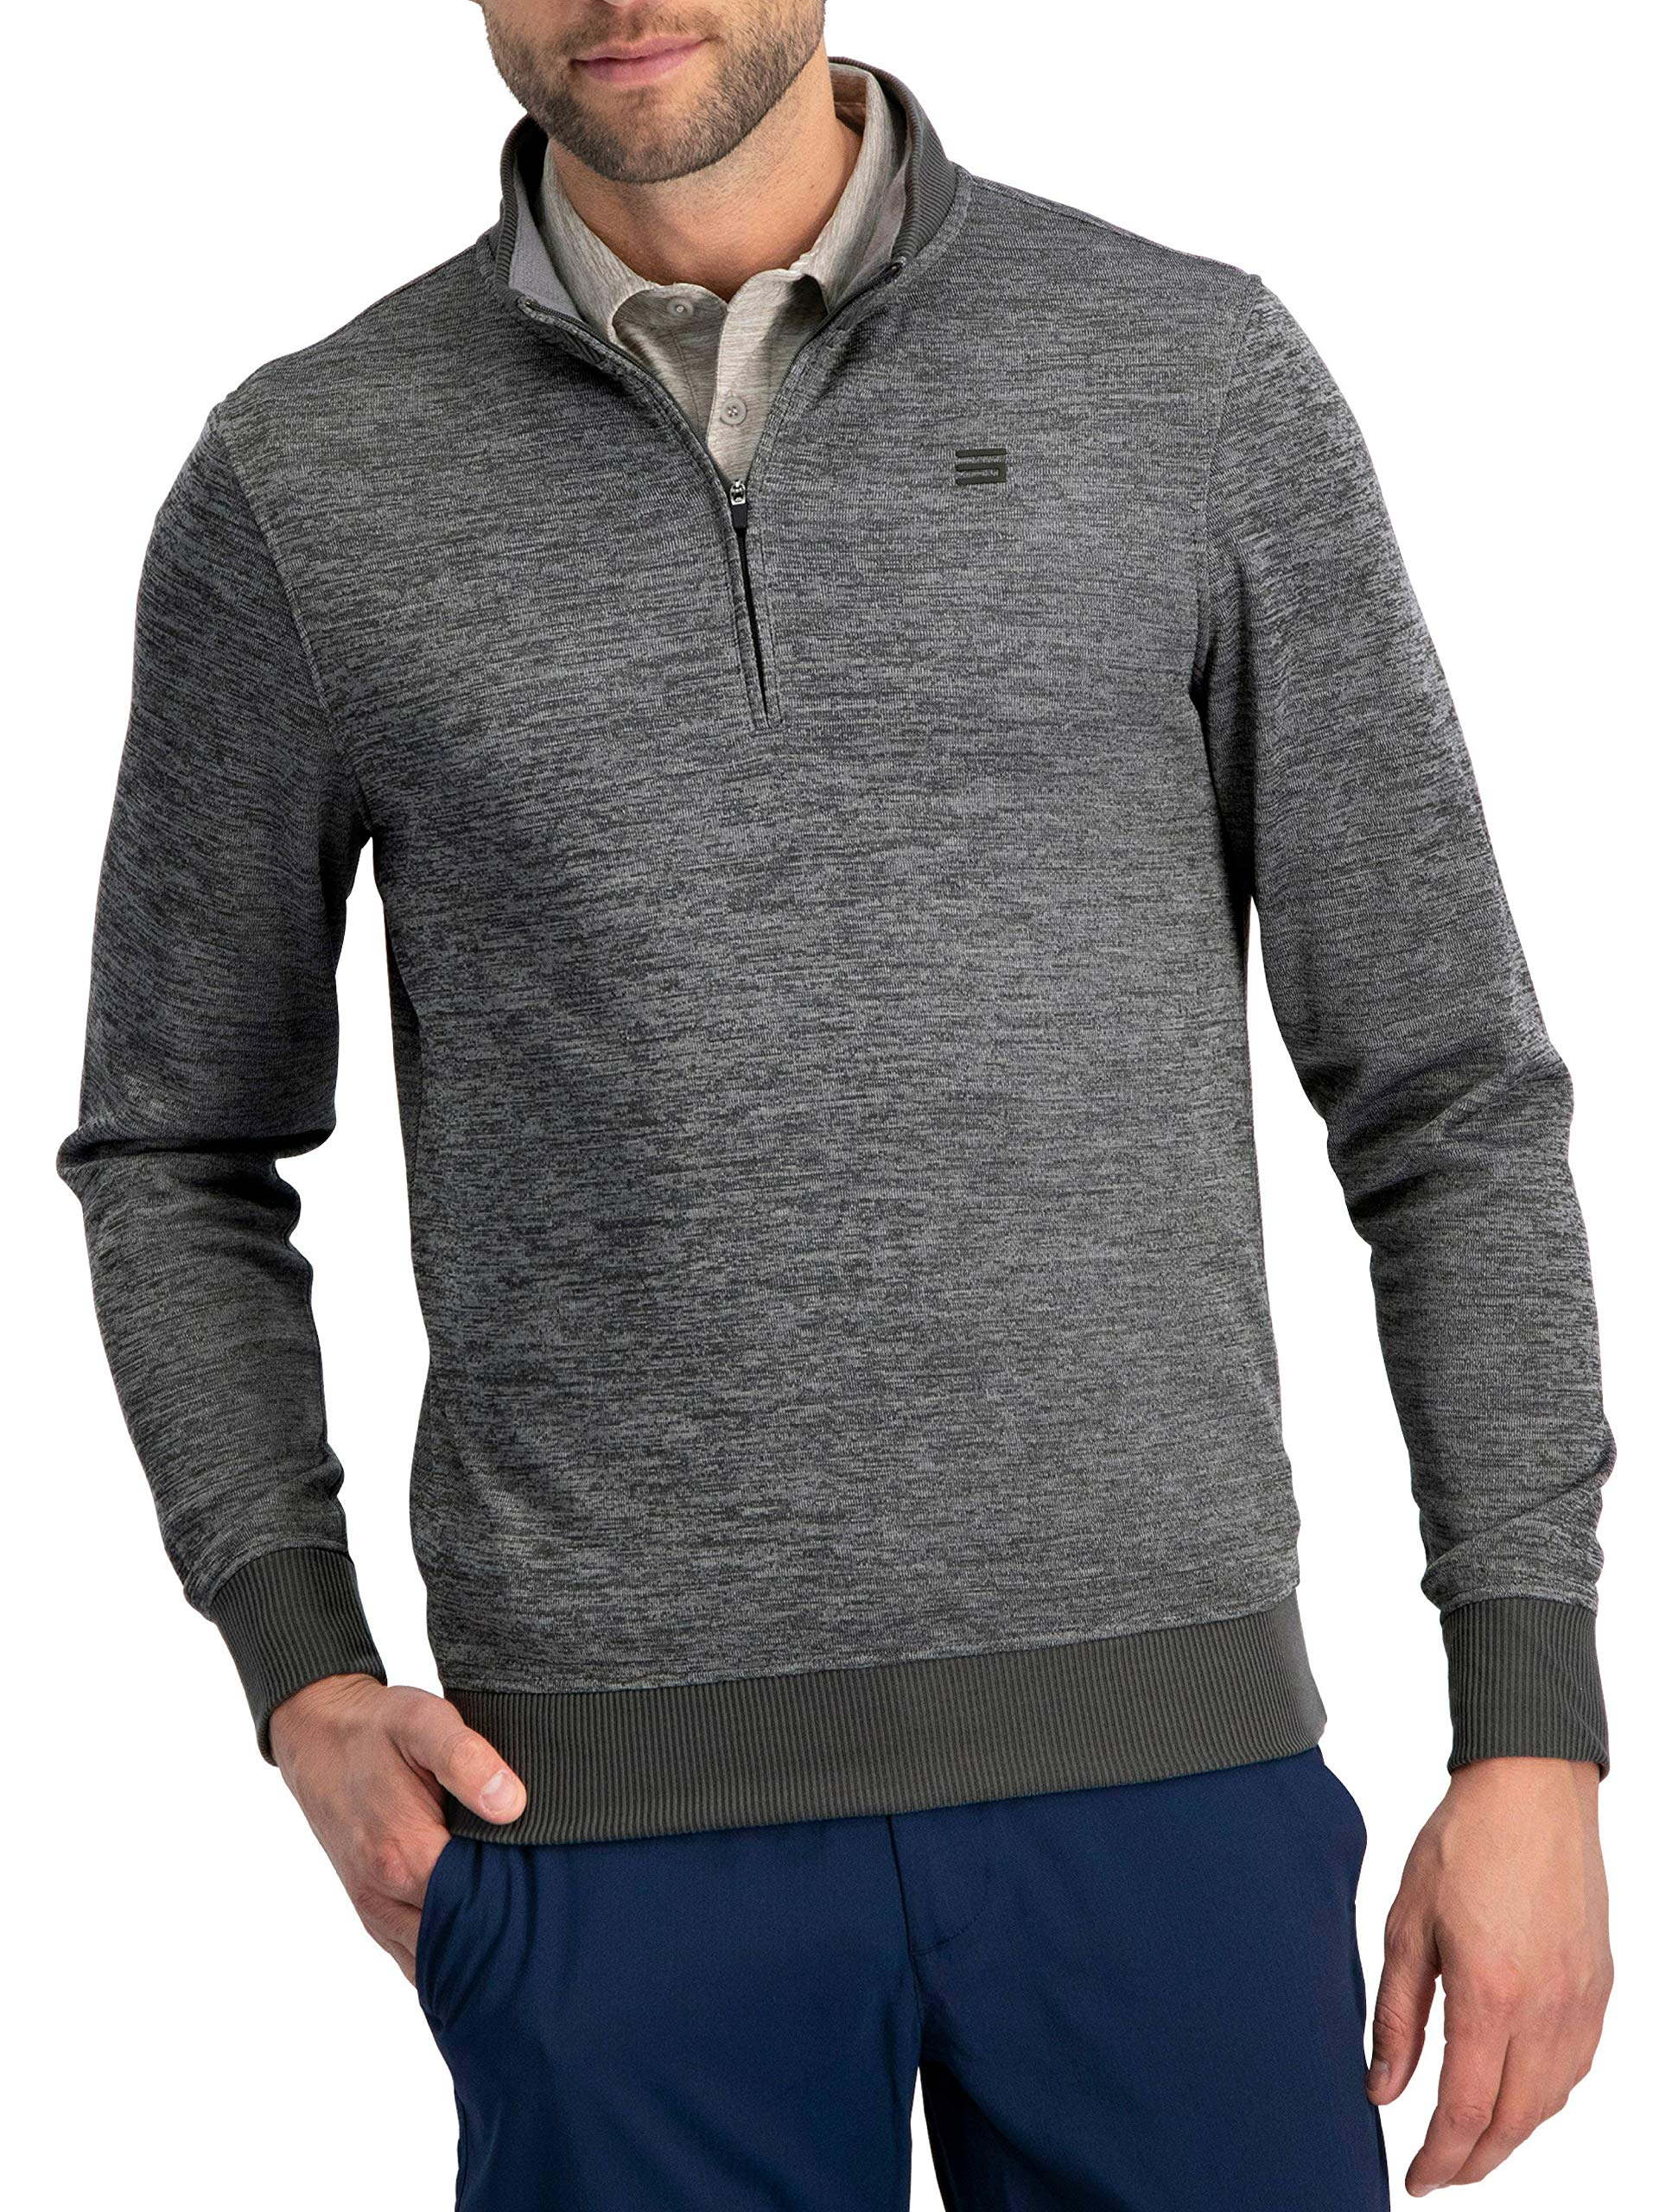 Dry Fit Pullover Sweaters for Men - Quarter Zip Fleece Golf Jacket - Tailored Fit Charcoal